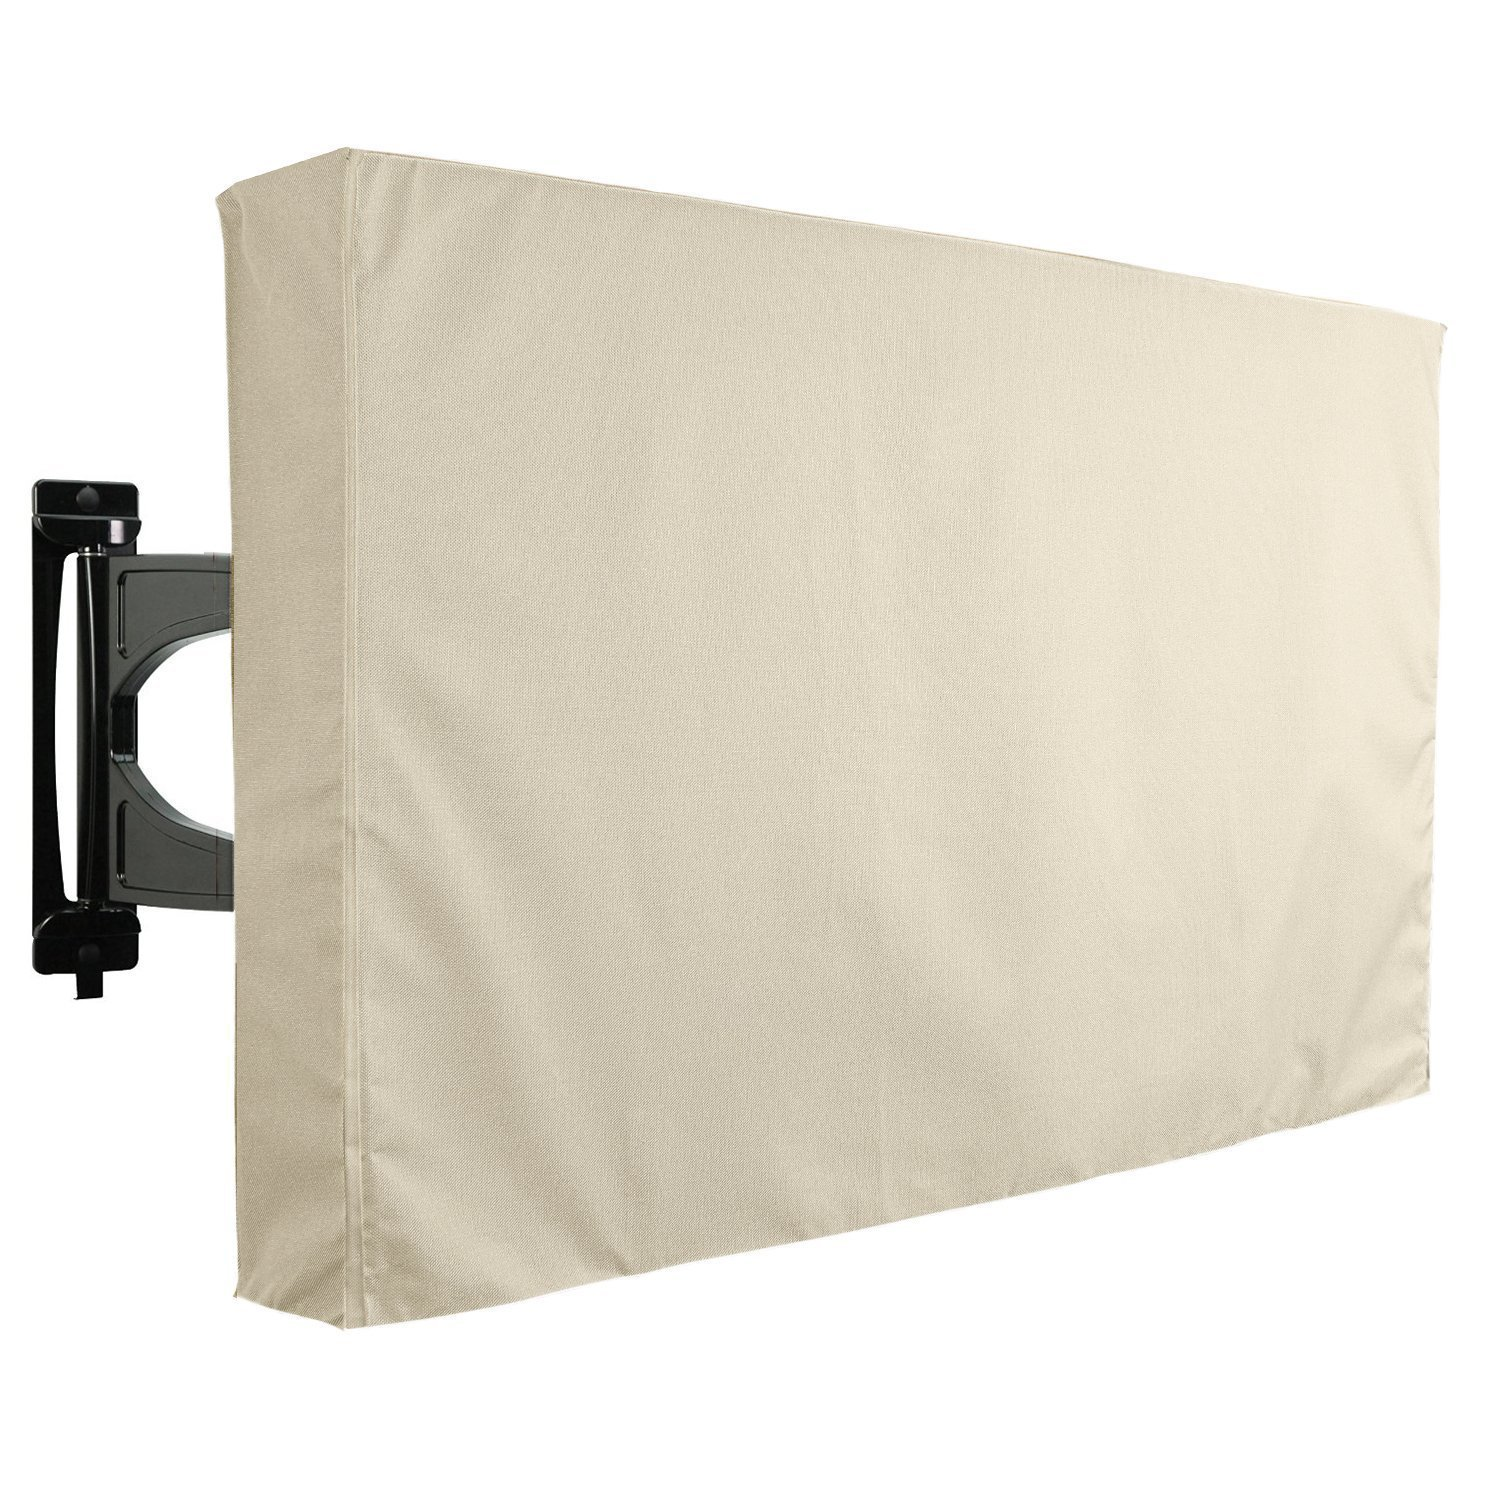 36-38 TV Weatherproof Cover Waterproof and Dust Resistant TV Outdoor Cover Black Universal Television Protector for Flat Screens